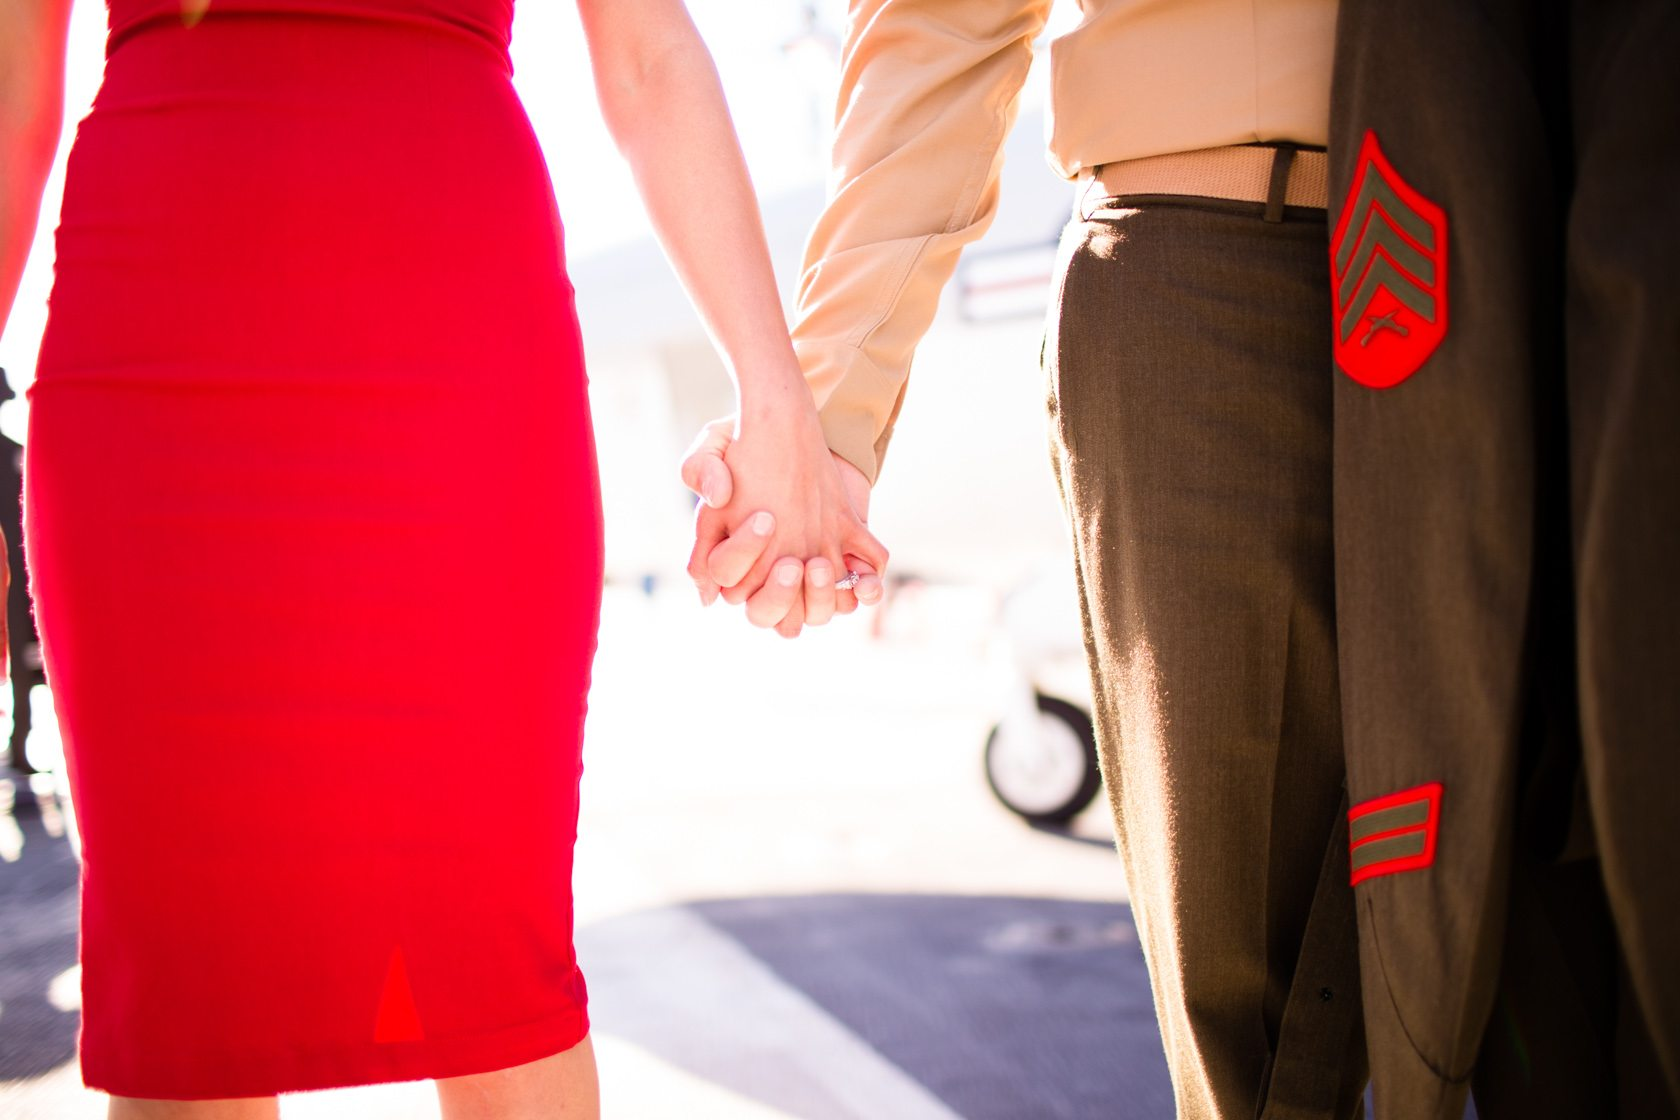 USS_Midway_Engagement_Session_11.jpg